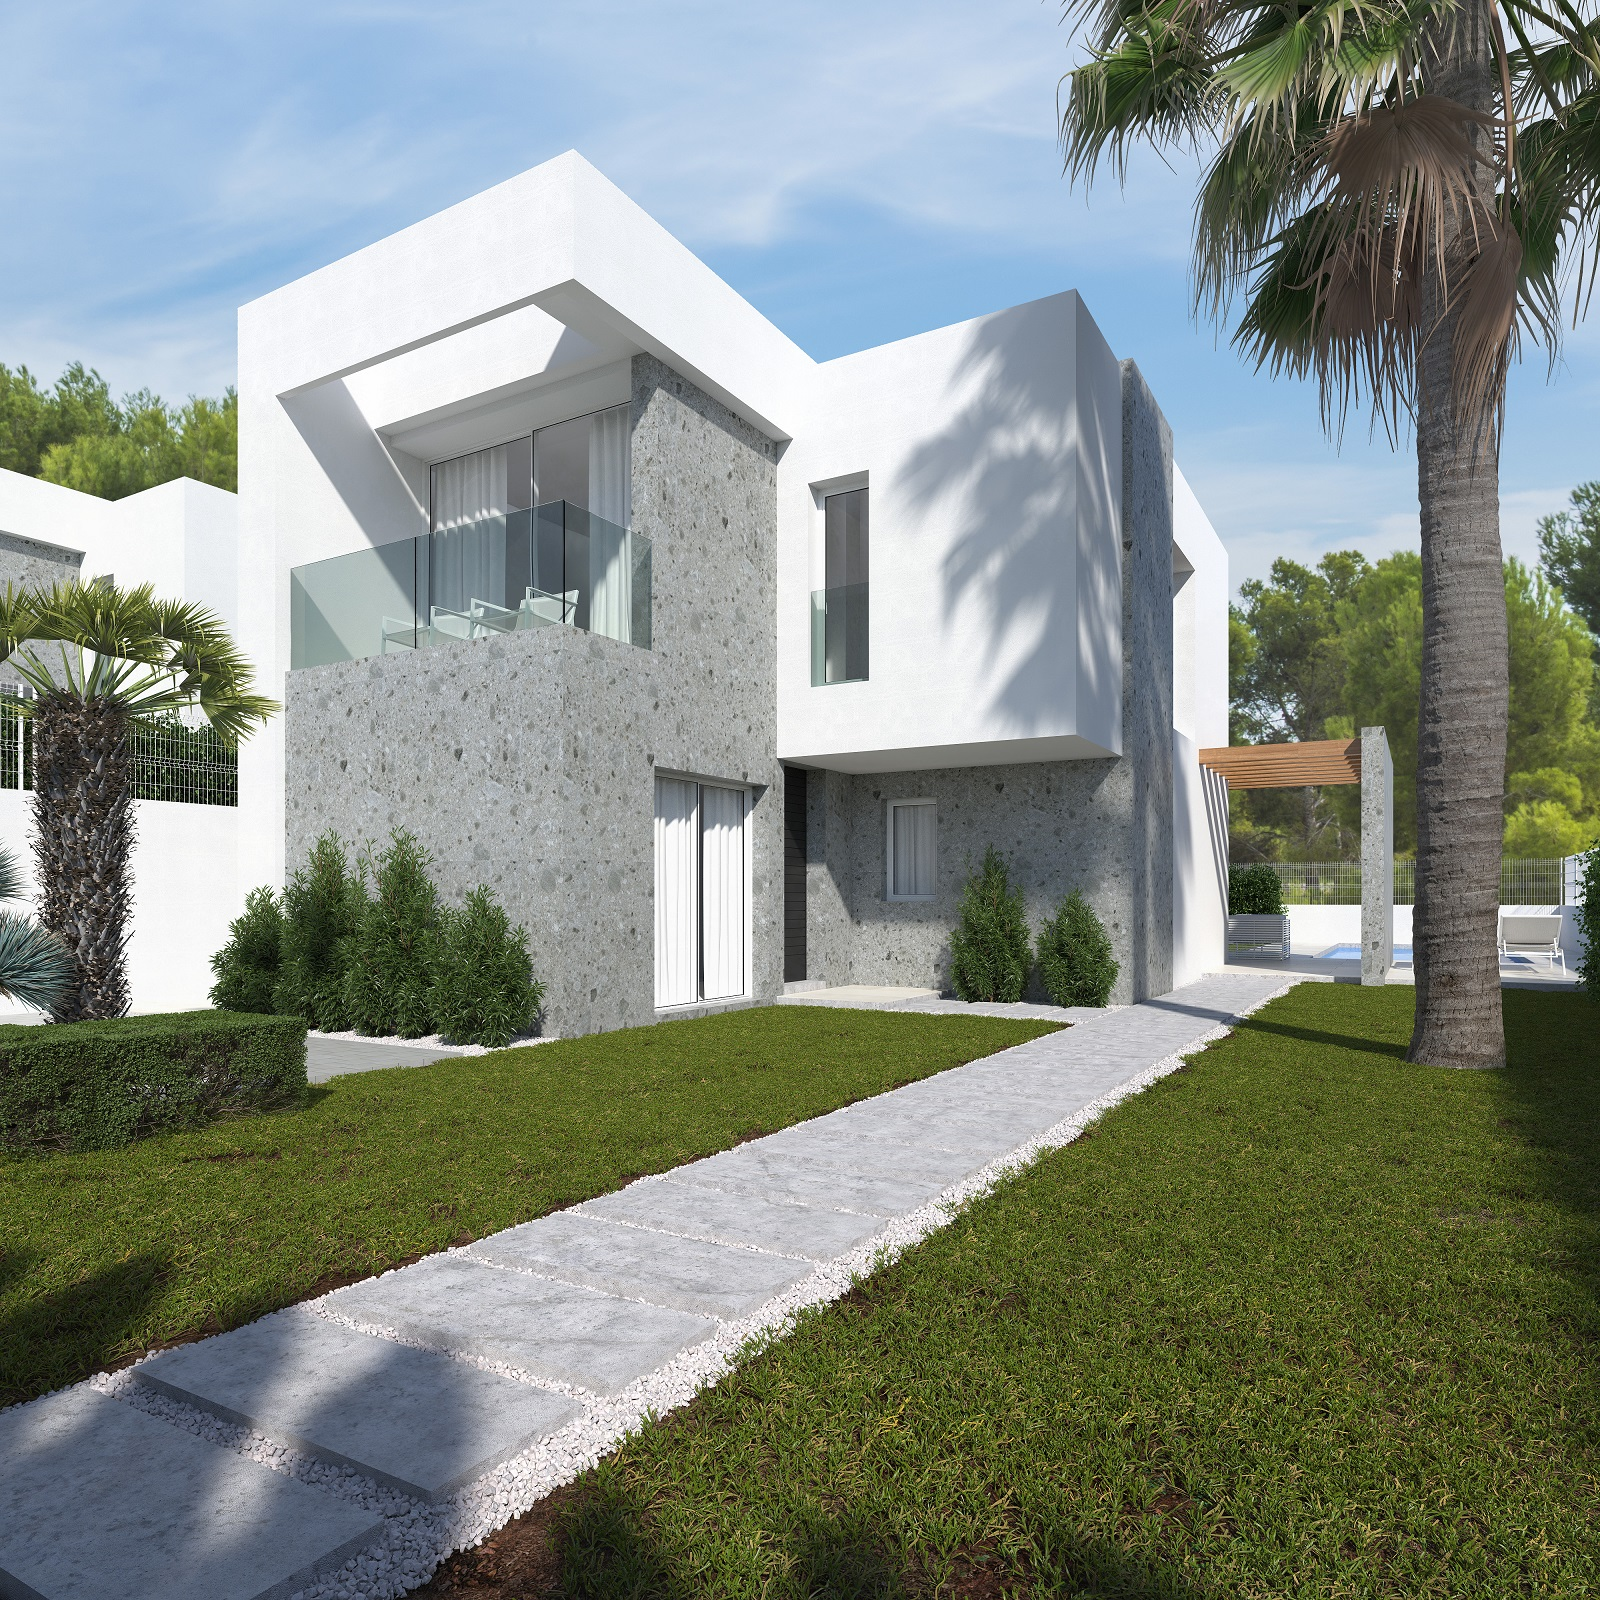 New Project: Beautiful Semi-Detached Houses in Finestrat, Benidorm